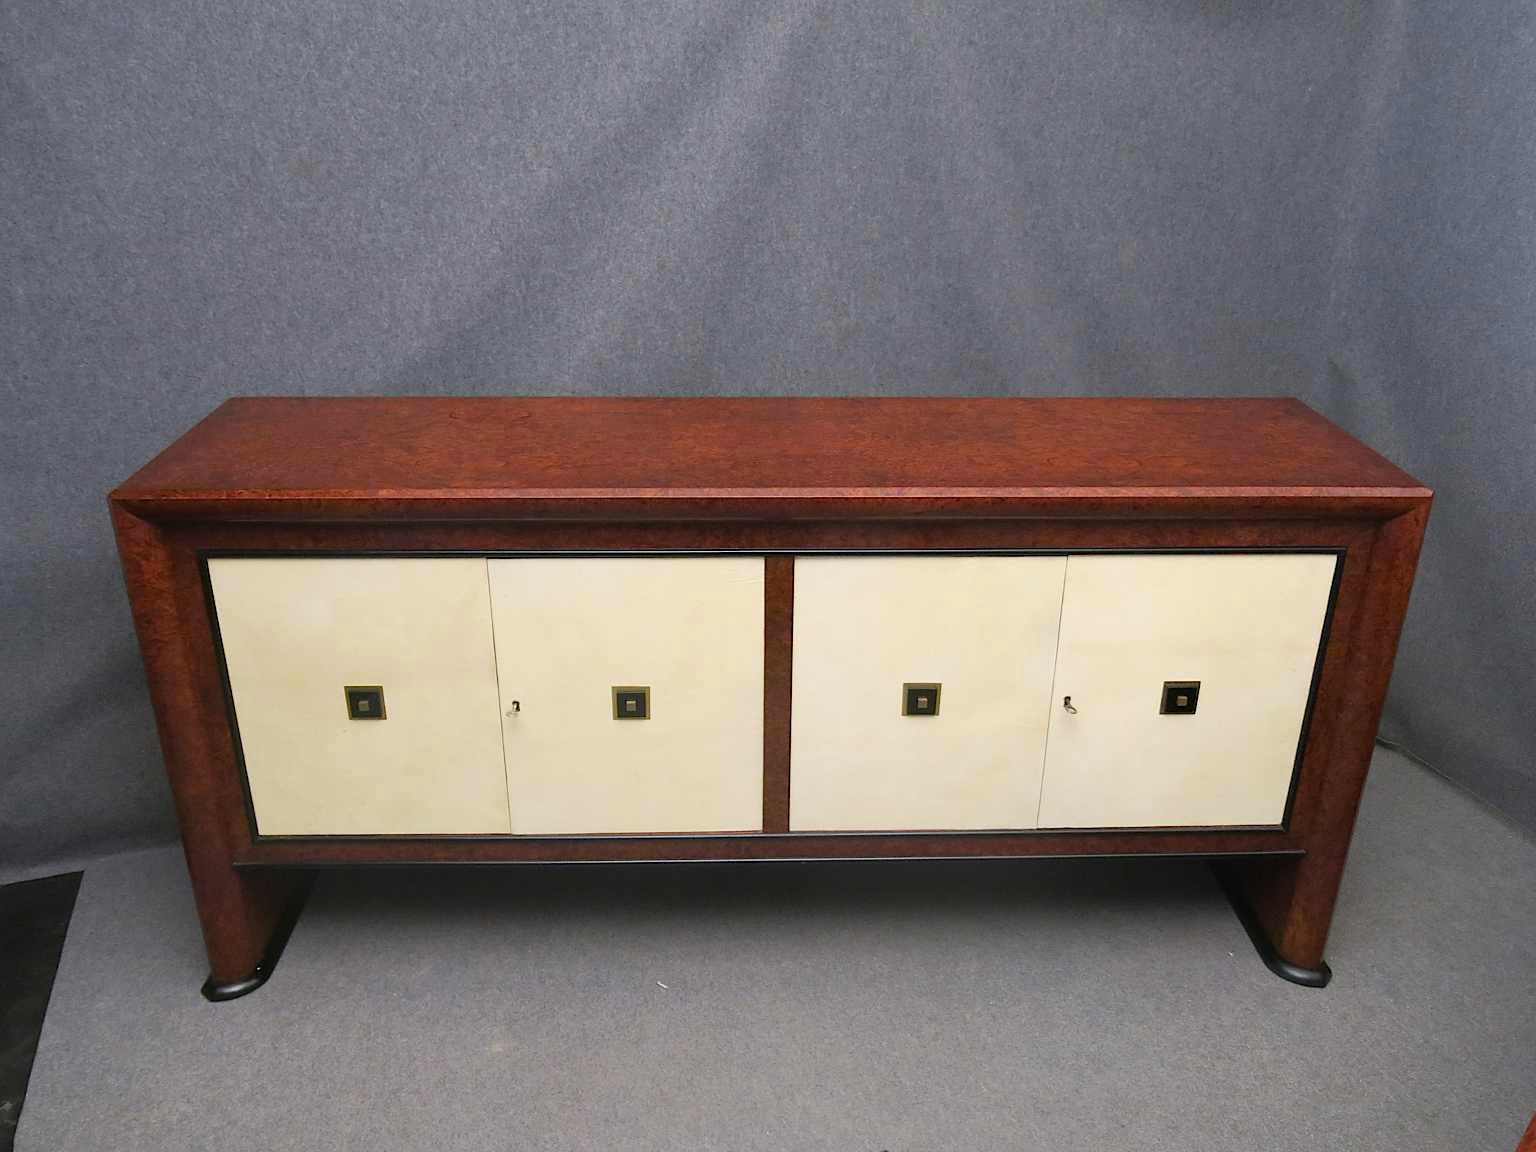 italian art deco maple parchment sideboard 1940 for sale at pamono. Black Bedroom Furniture Sets. Home Design Ideas